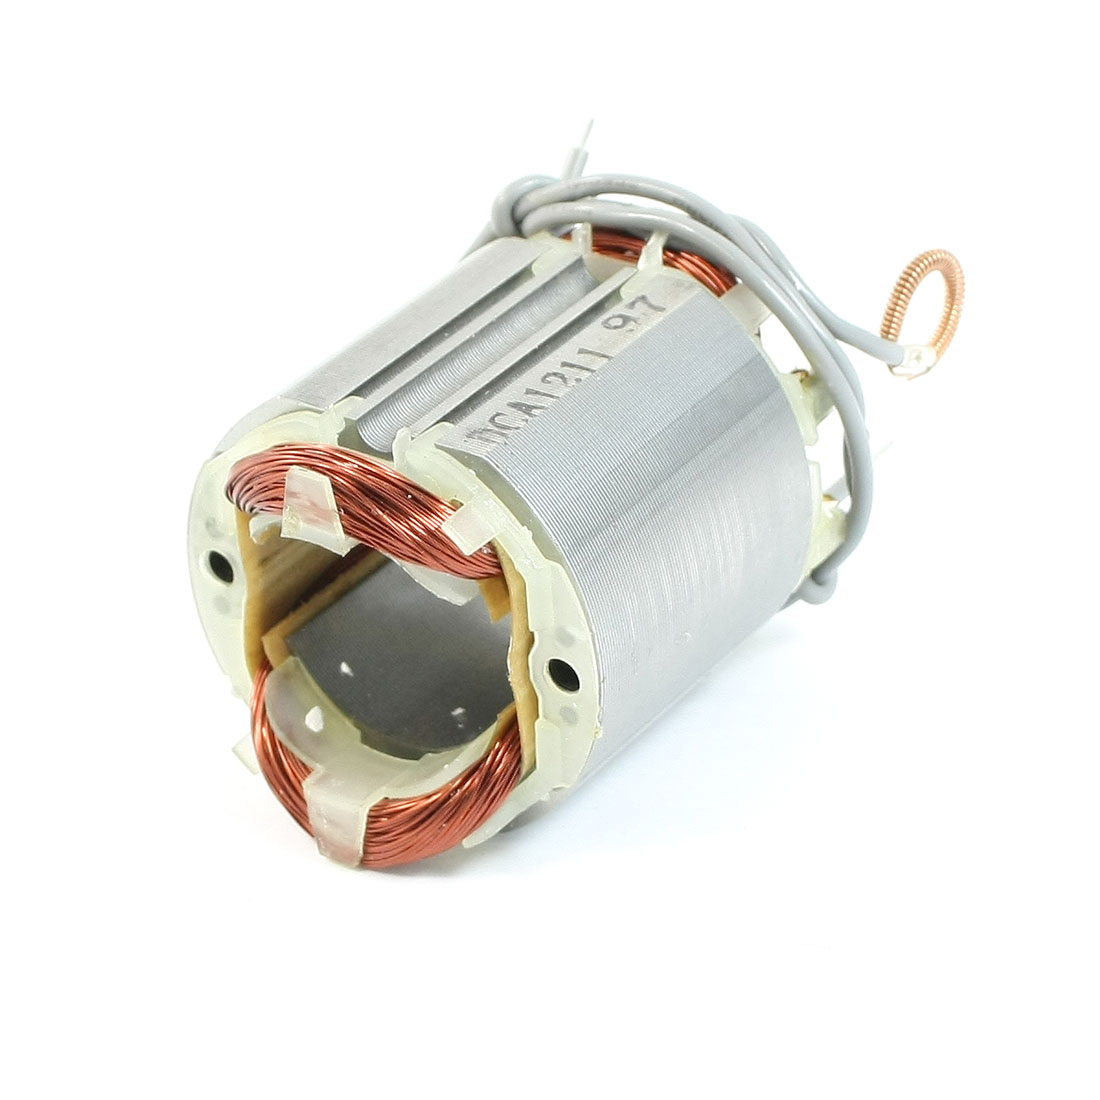 AC220V Copper 33mm Rotor Core Motor Stator for Makita N1900B Angle Grinder